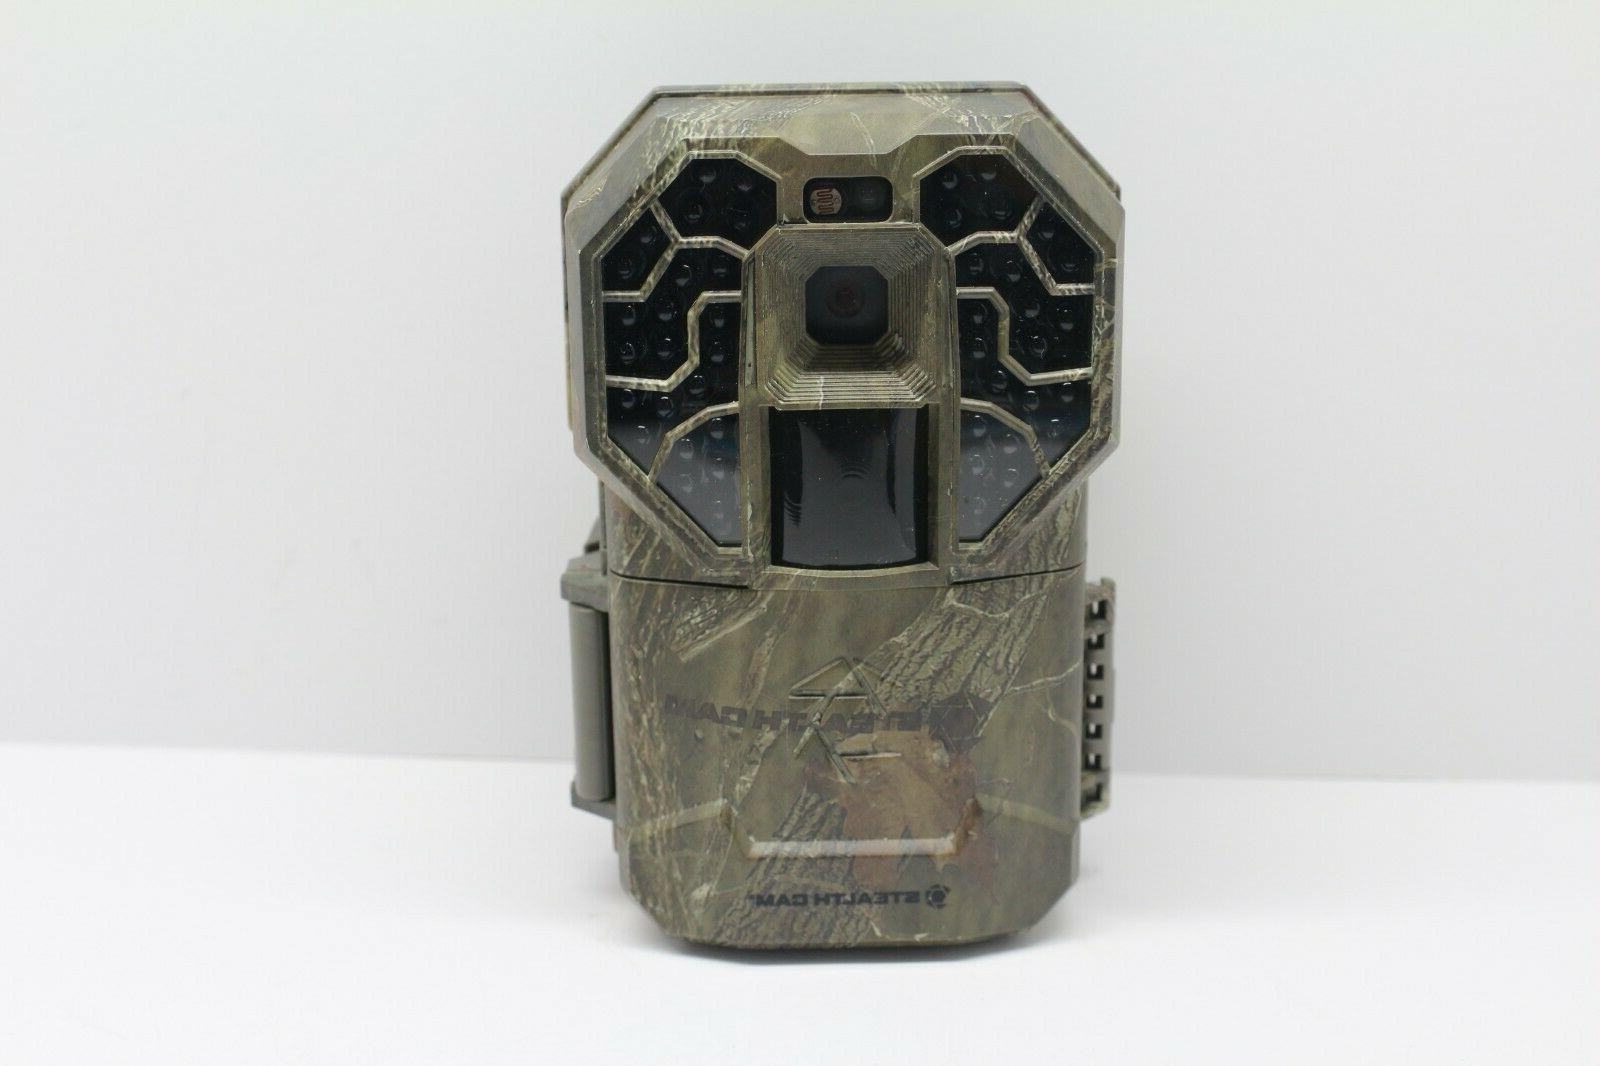 StealthCam 14.0 Megapixel No-Glo